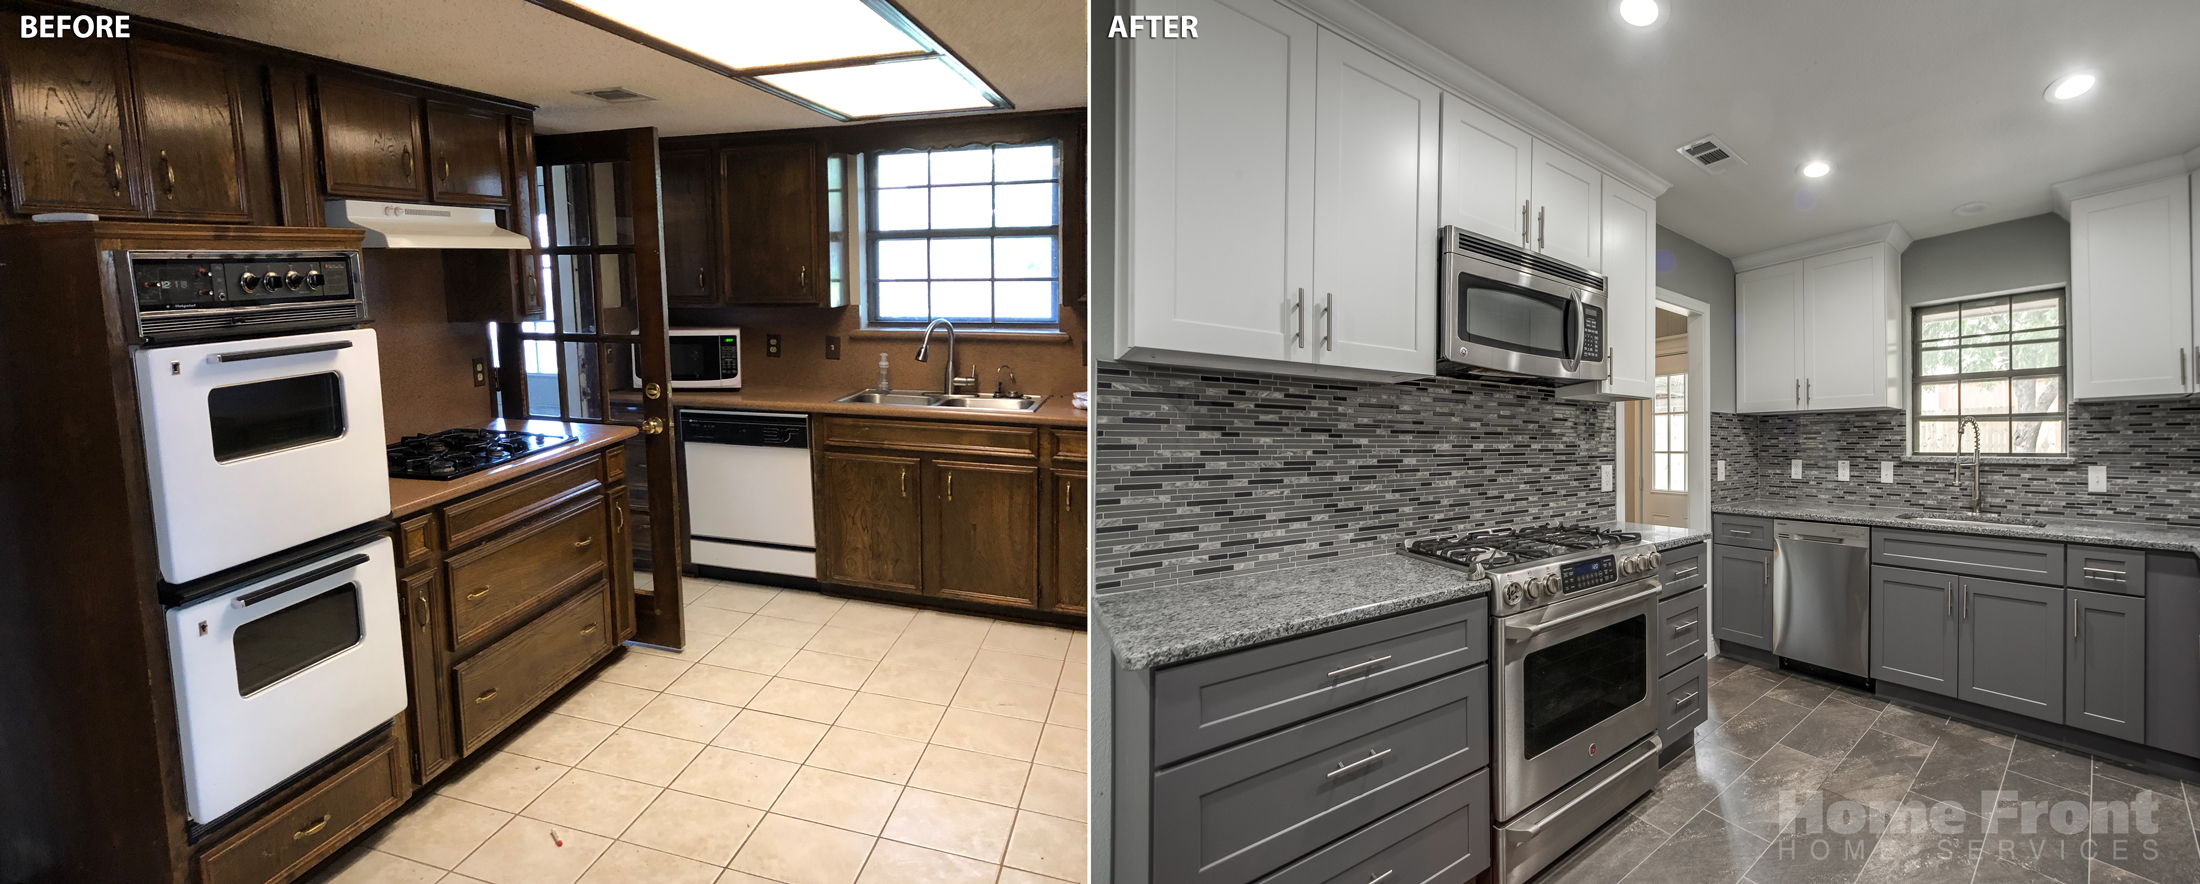 Cemetery-Hill-before-after-kitchen